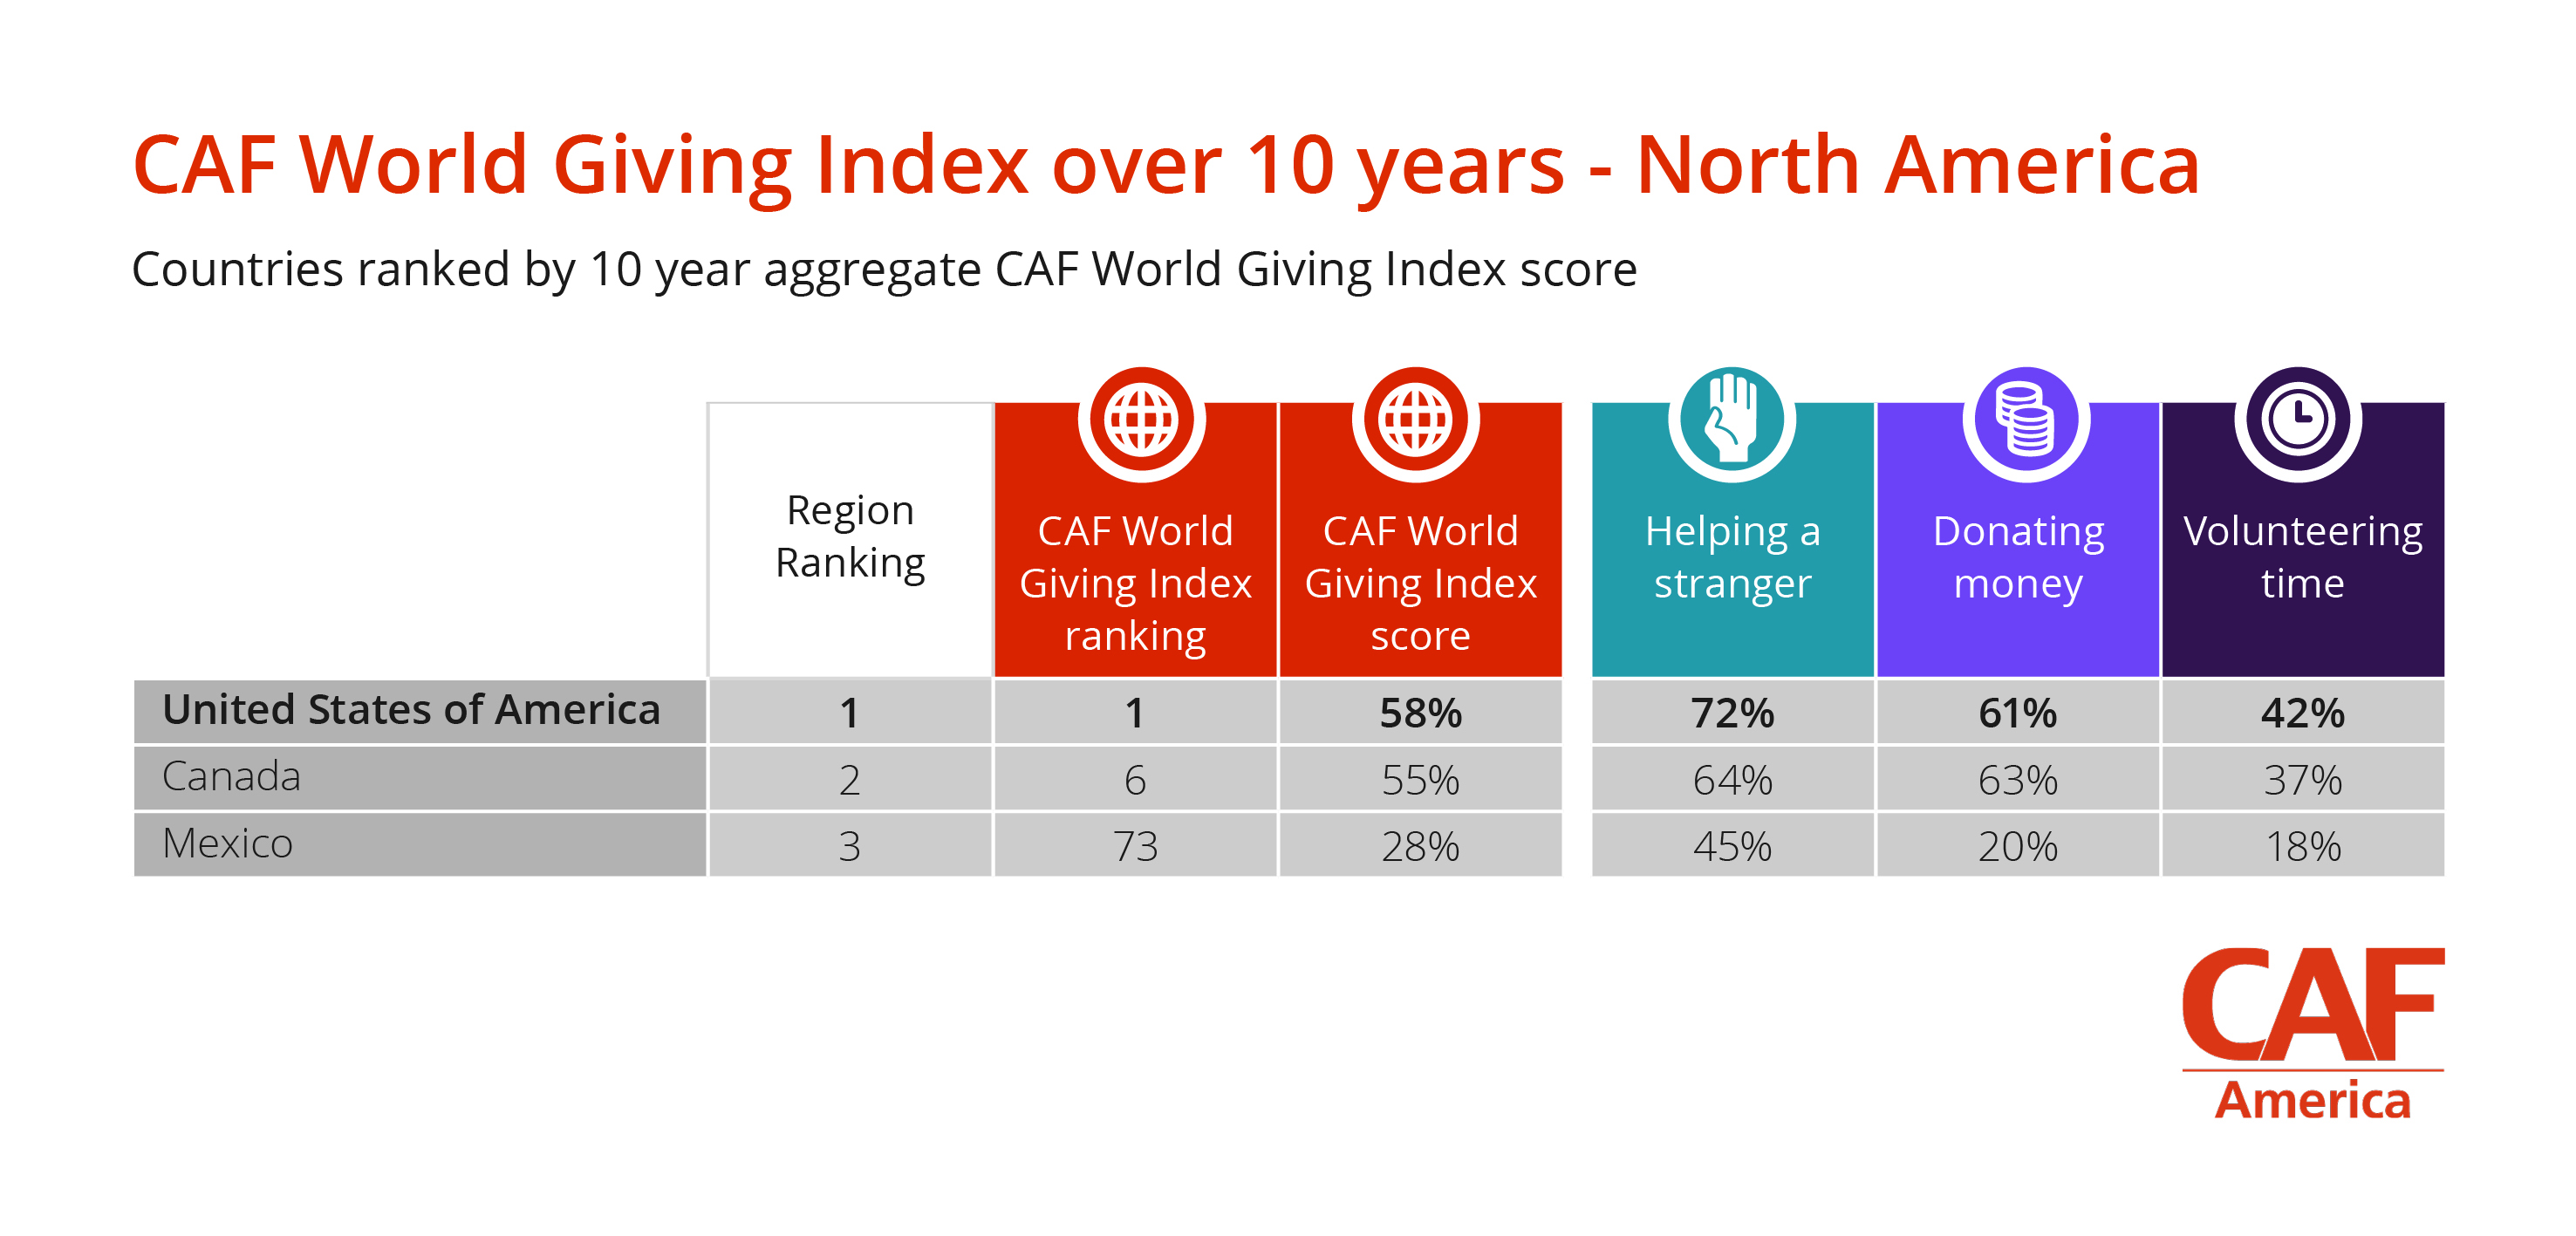 CAF World Giving Index over 10 years_North America (USA)